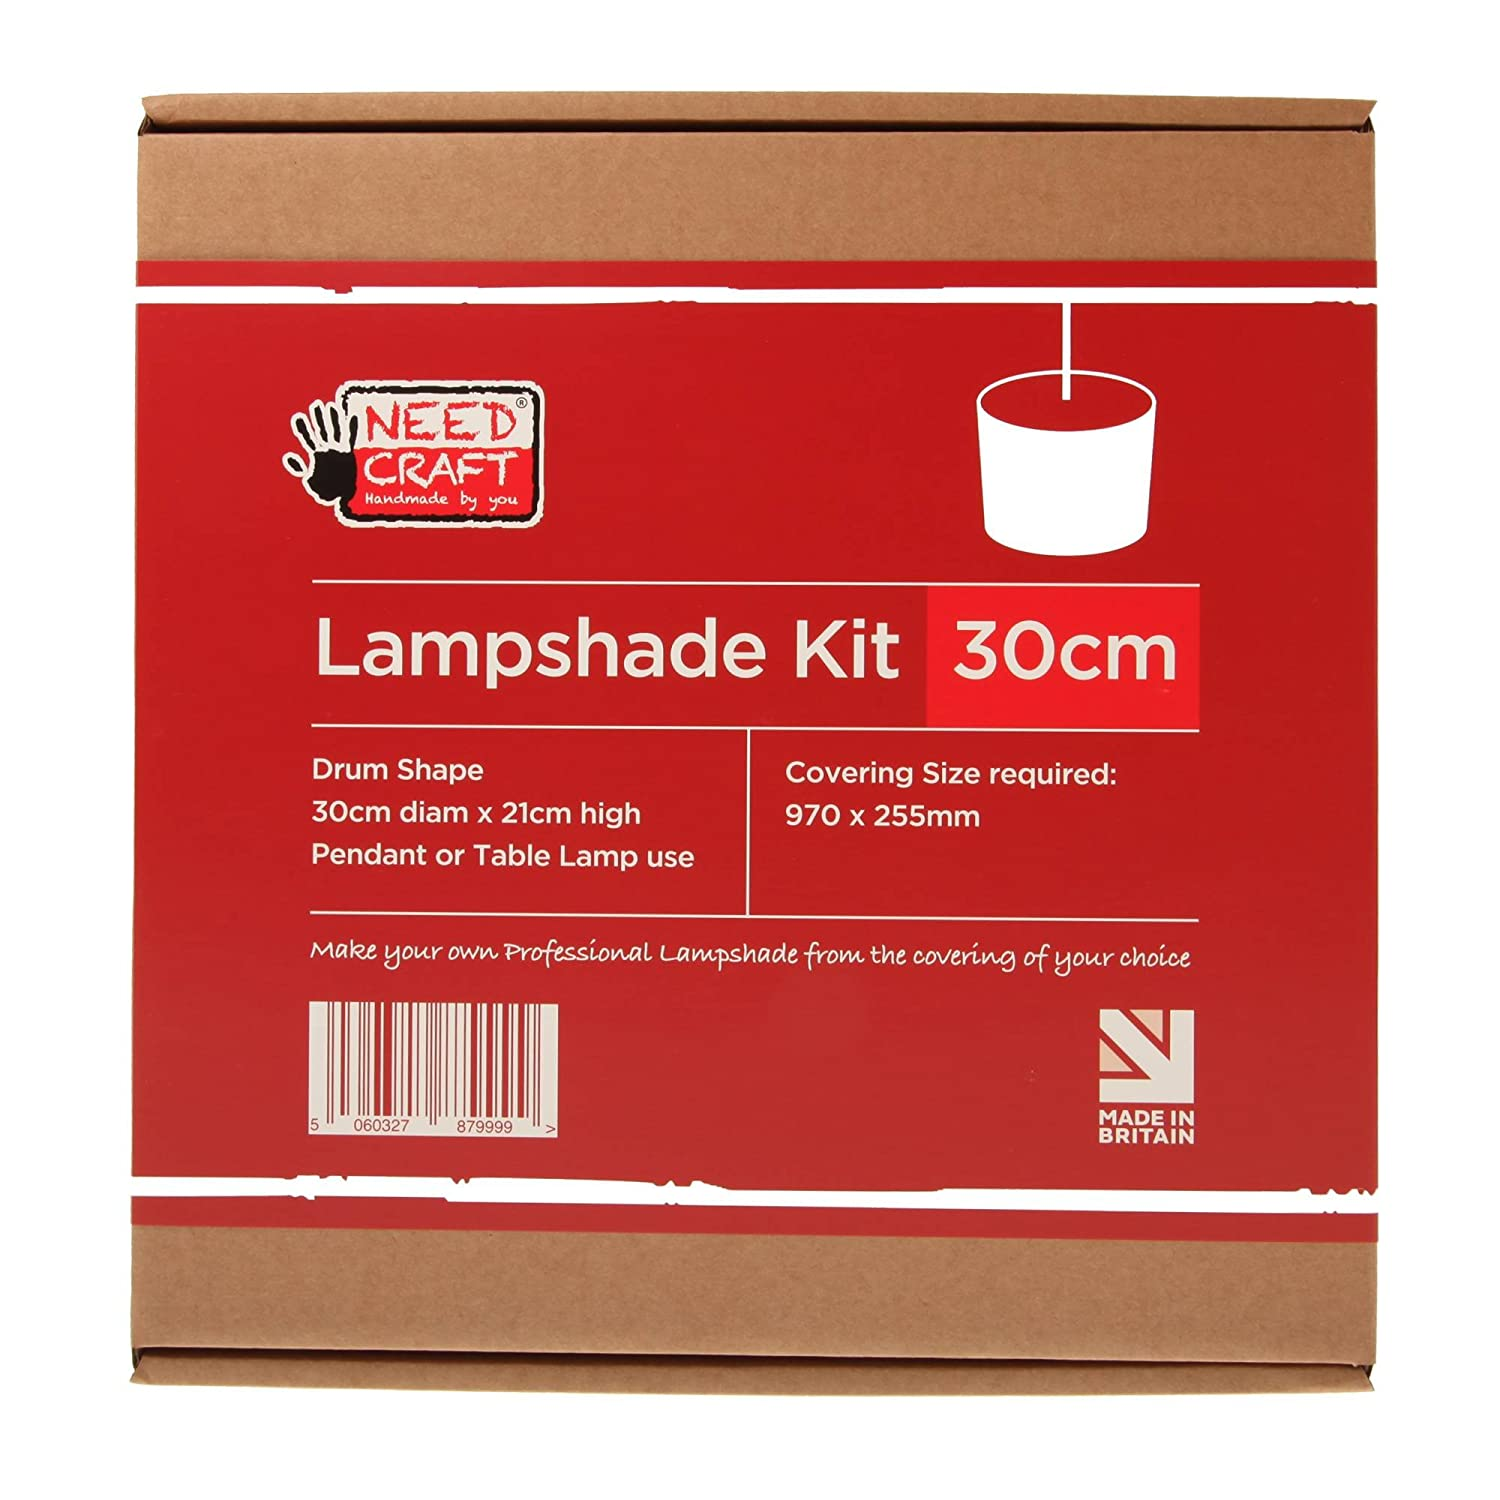 30cm Lampshade Making Kit for Pendants Or Table Lamps lmk30cmdrum needcraft.co.uk